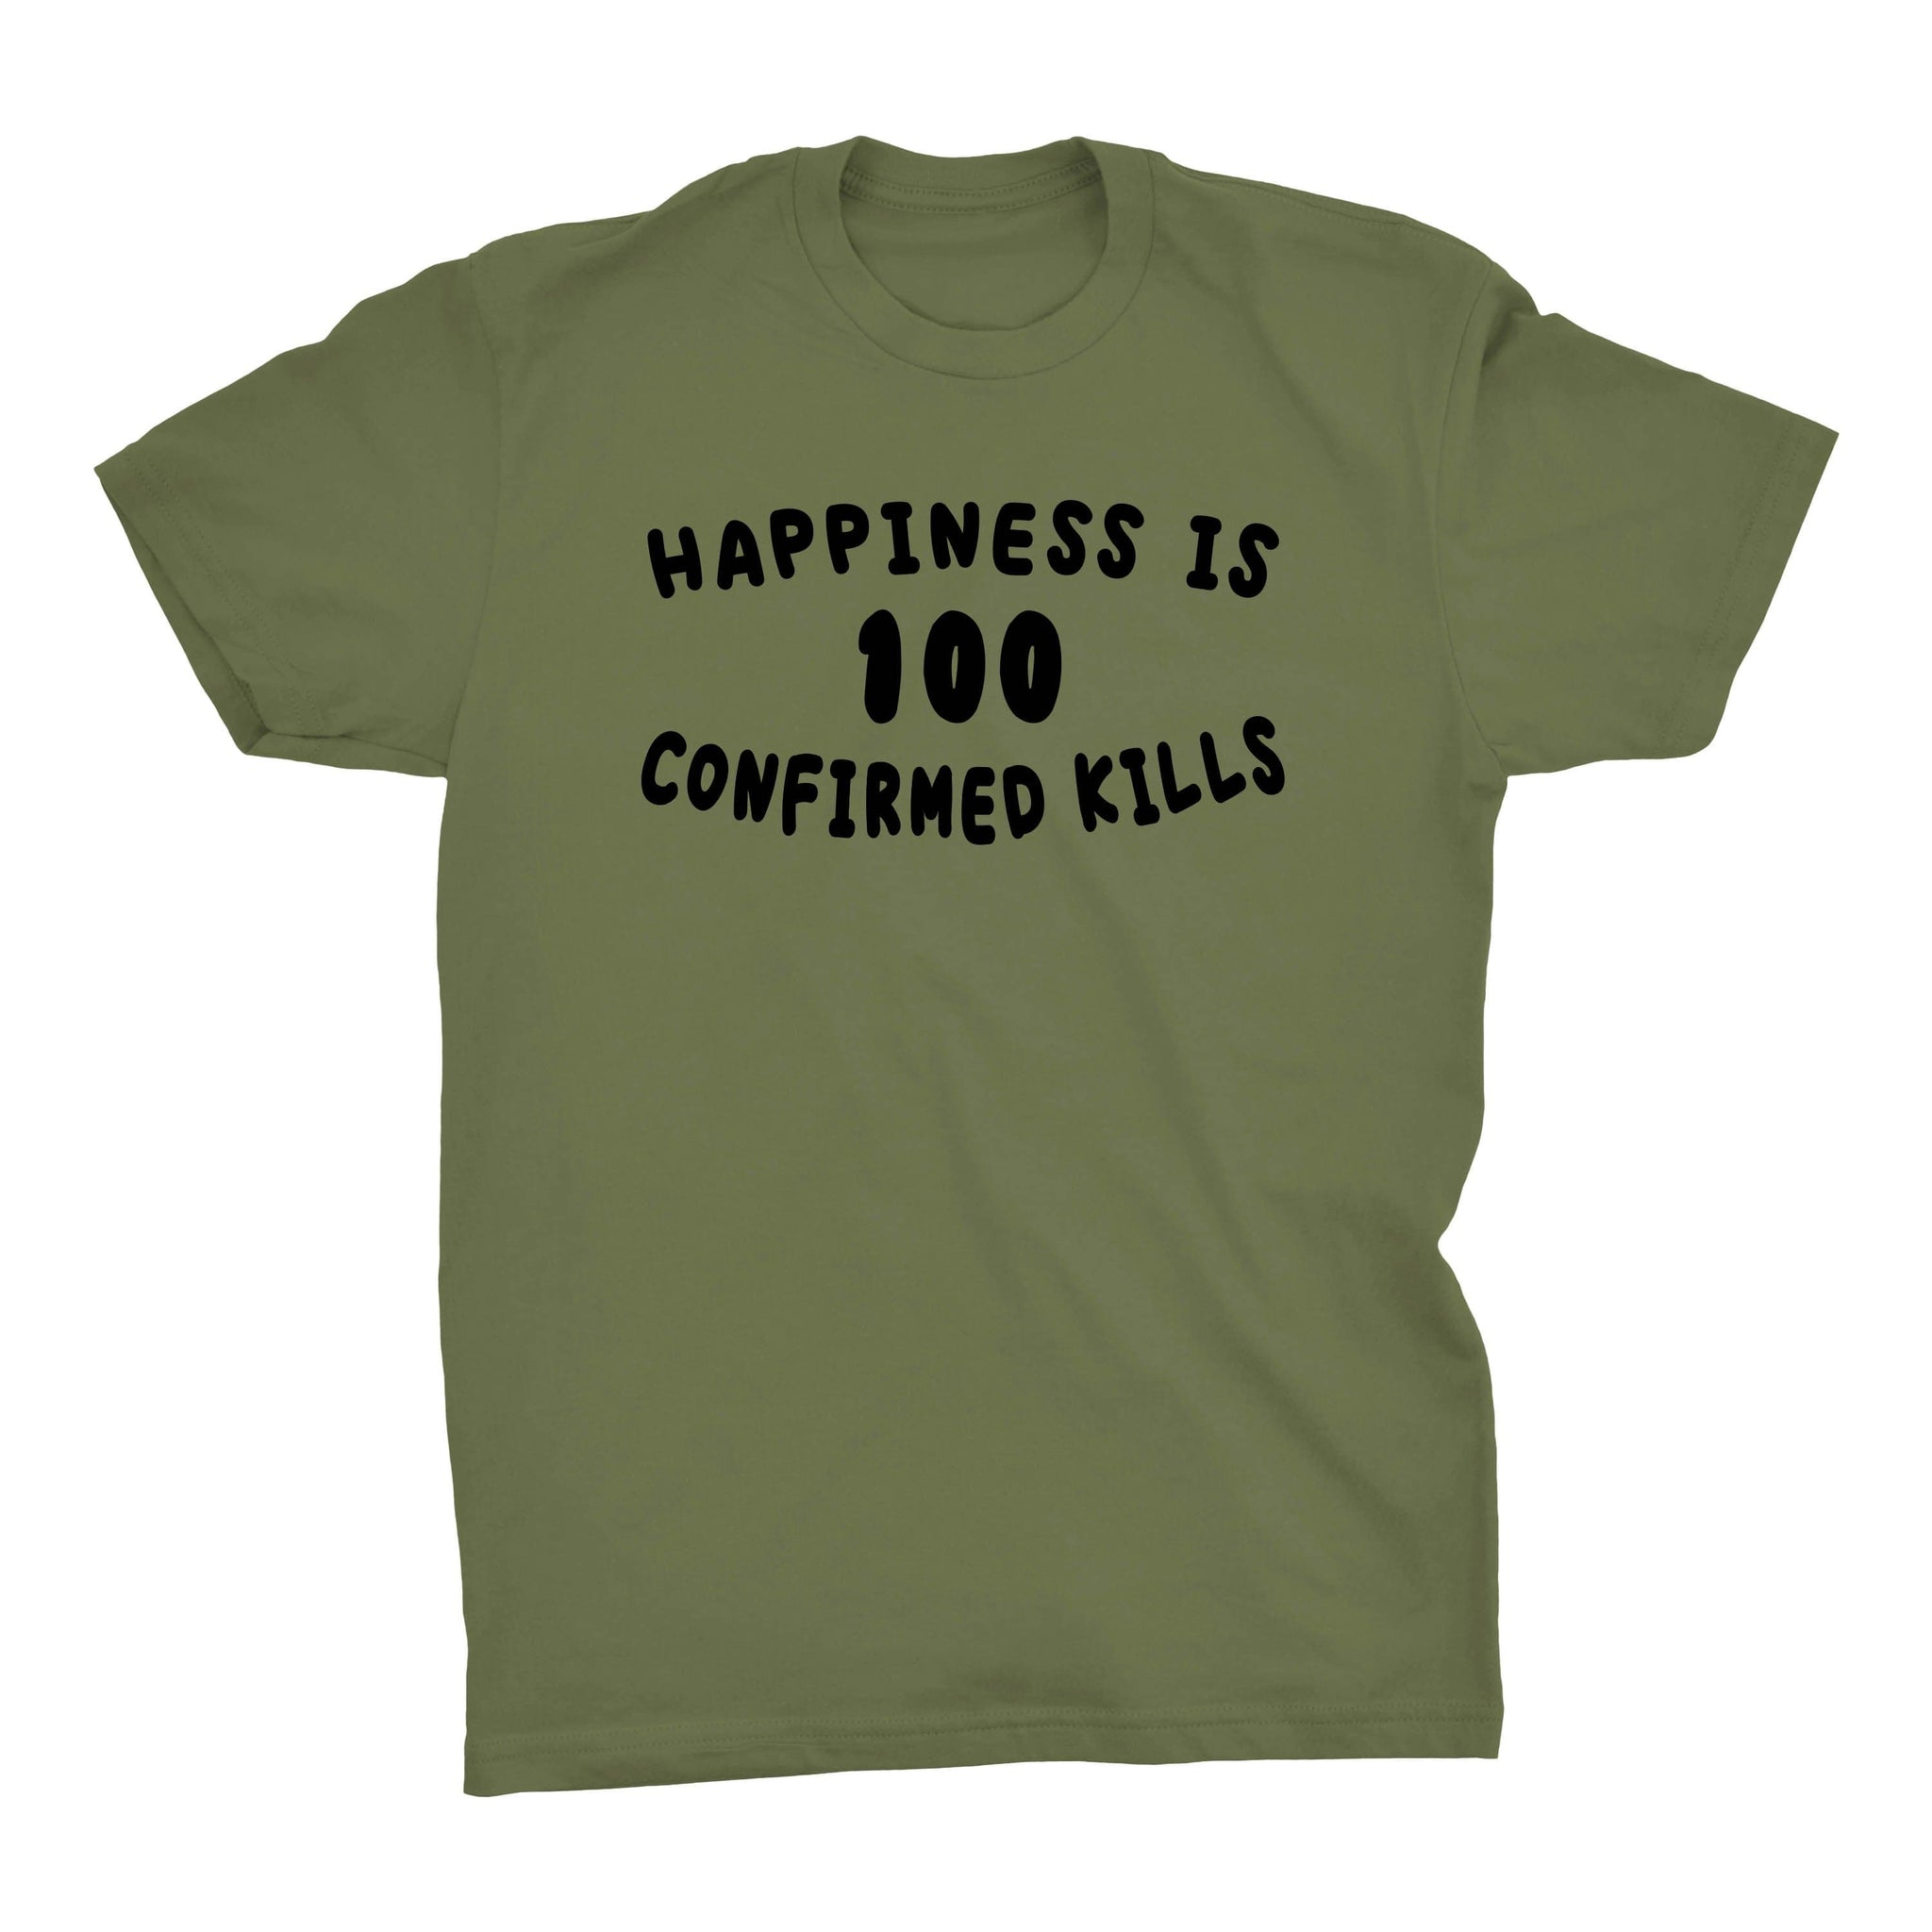 Happiness is 100 Confirmed Kills - Military Green - T-Shirts - Pipe Hitters Union